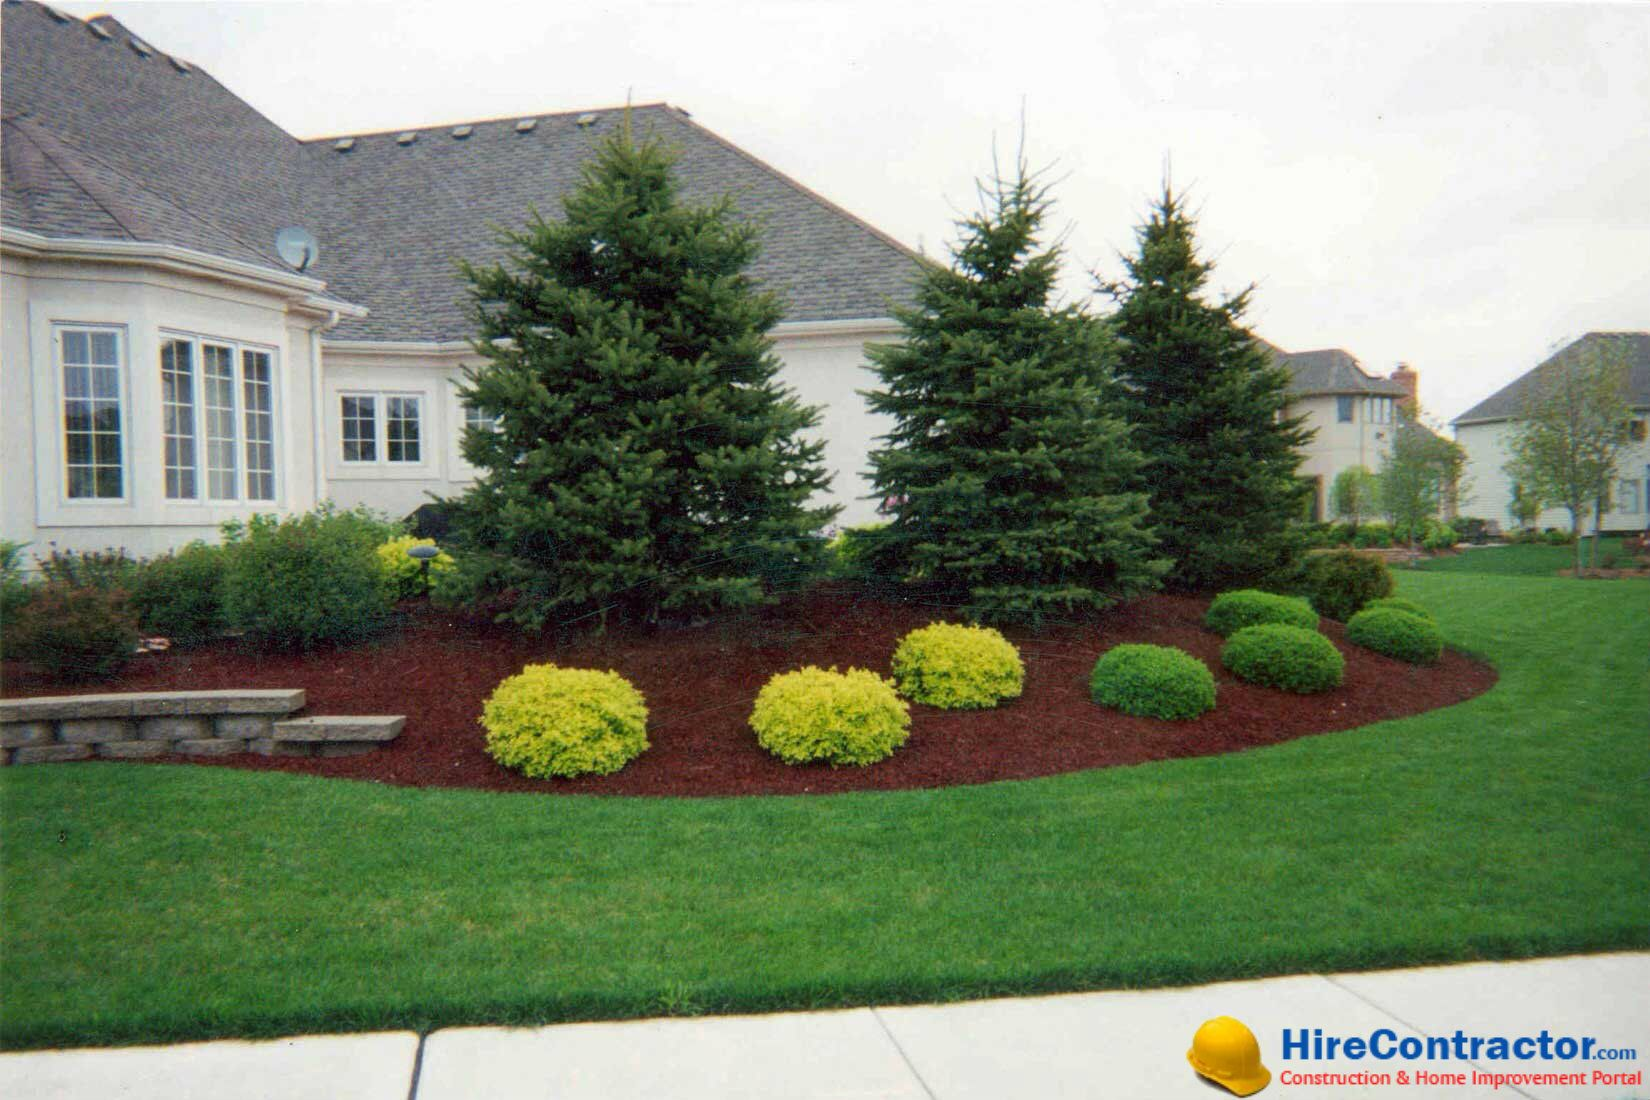 professional landscape gardening coupled with a well